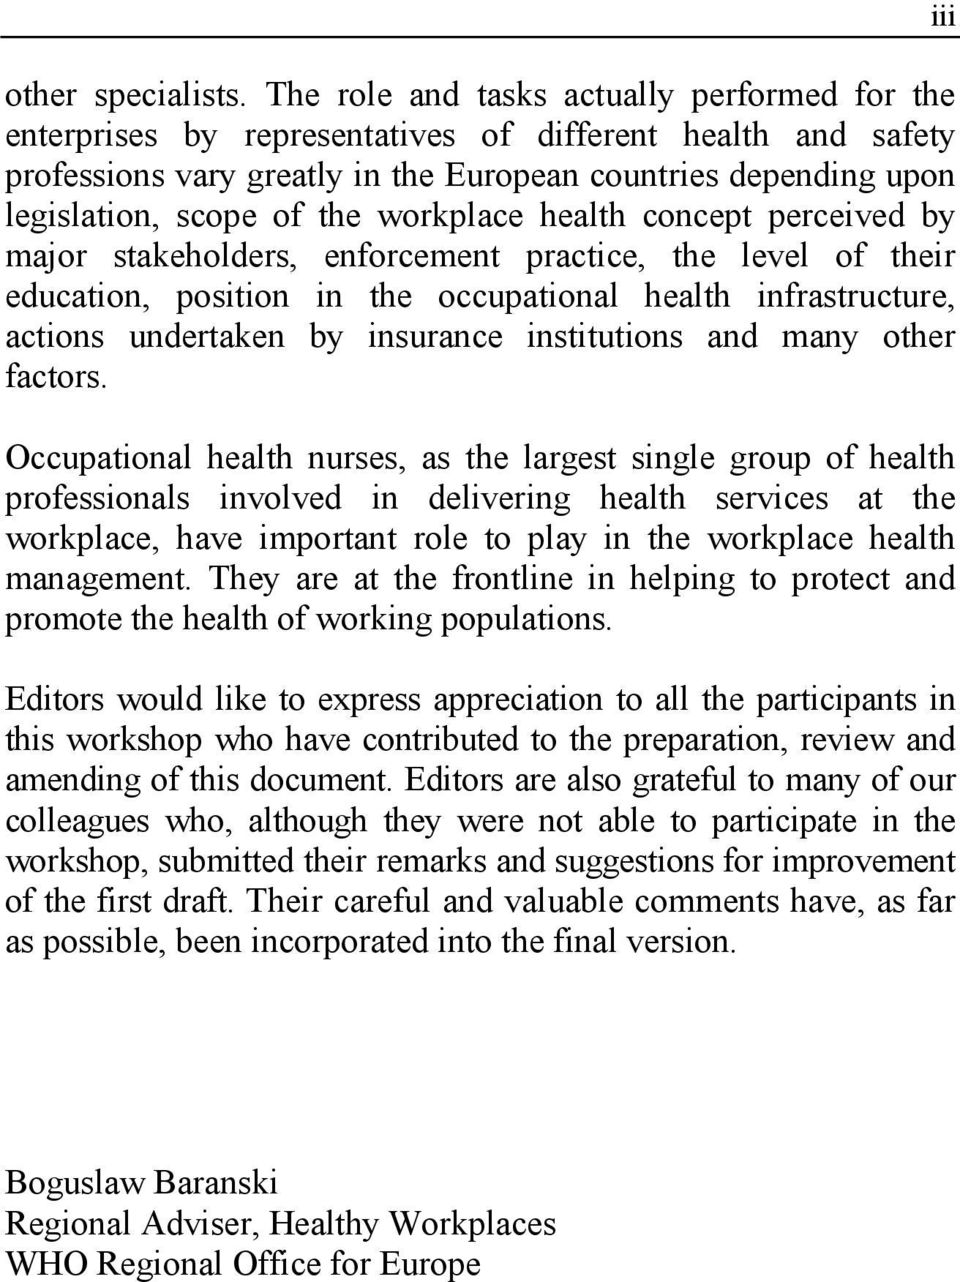 workplace health concept perceived by major stakeholders, enforcement practice, the level of their education, position in the occupational health infrastructure, actions undertaken by insurance